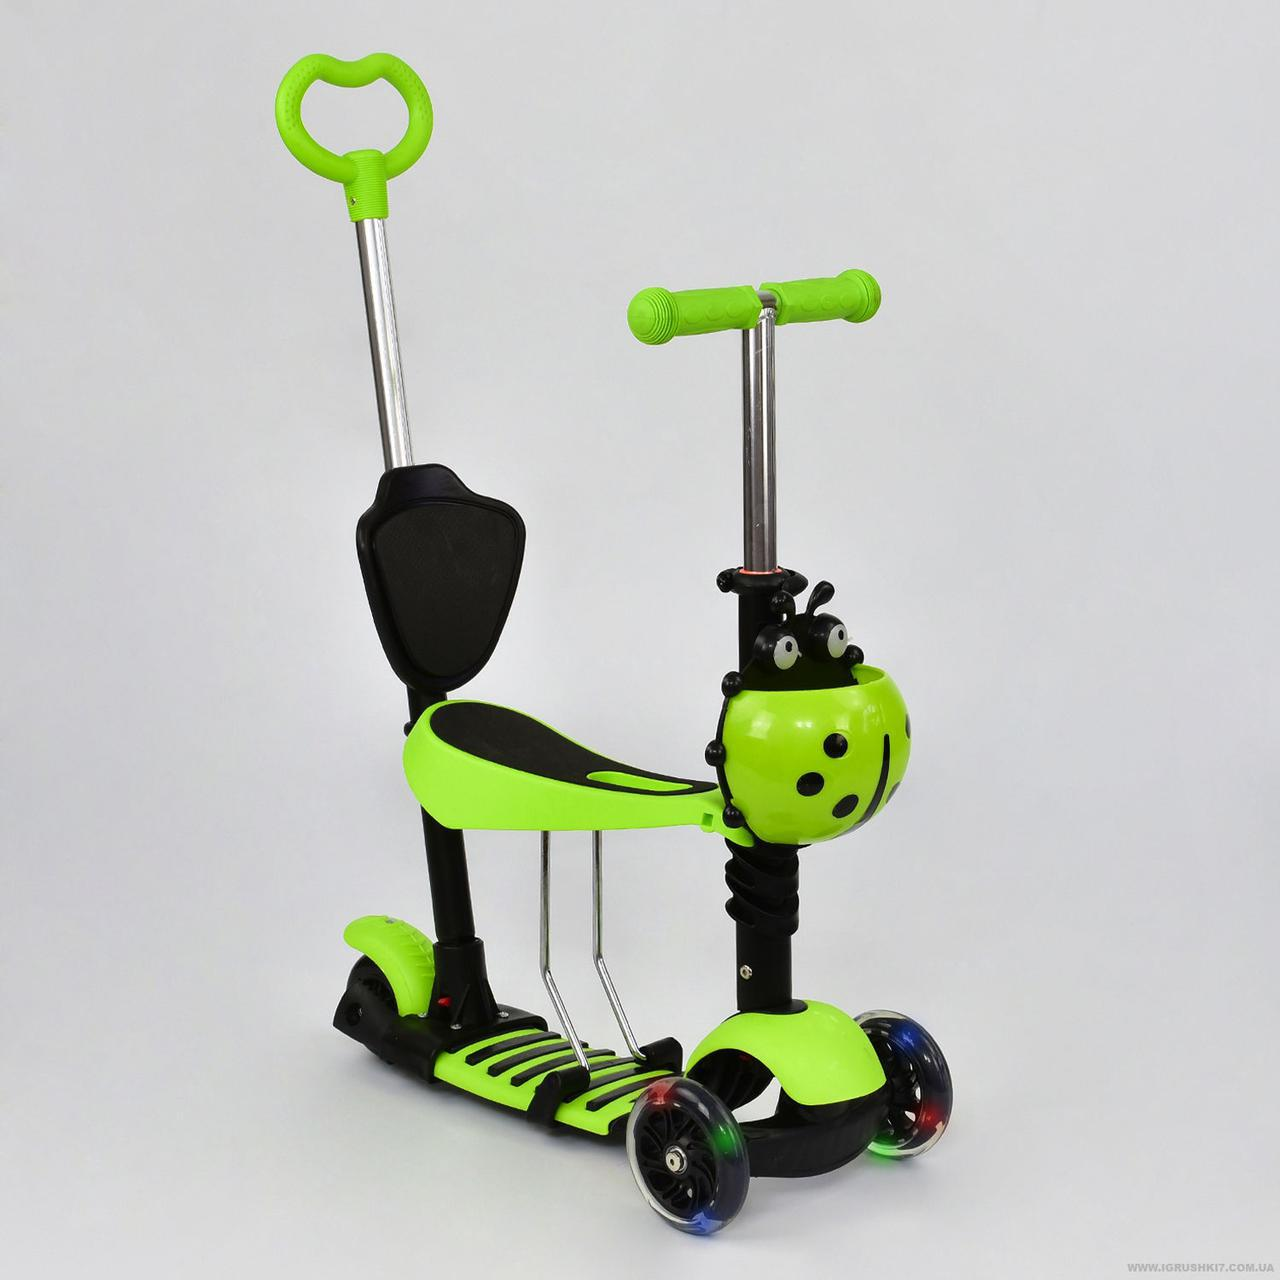 Самокат-беговел 3-х колесный Best Scooter 5 в 1А 24678 - 3050 салатовы